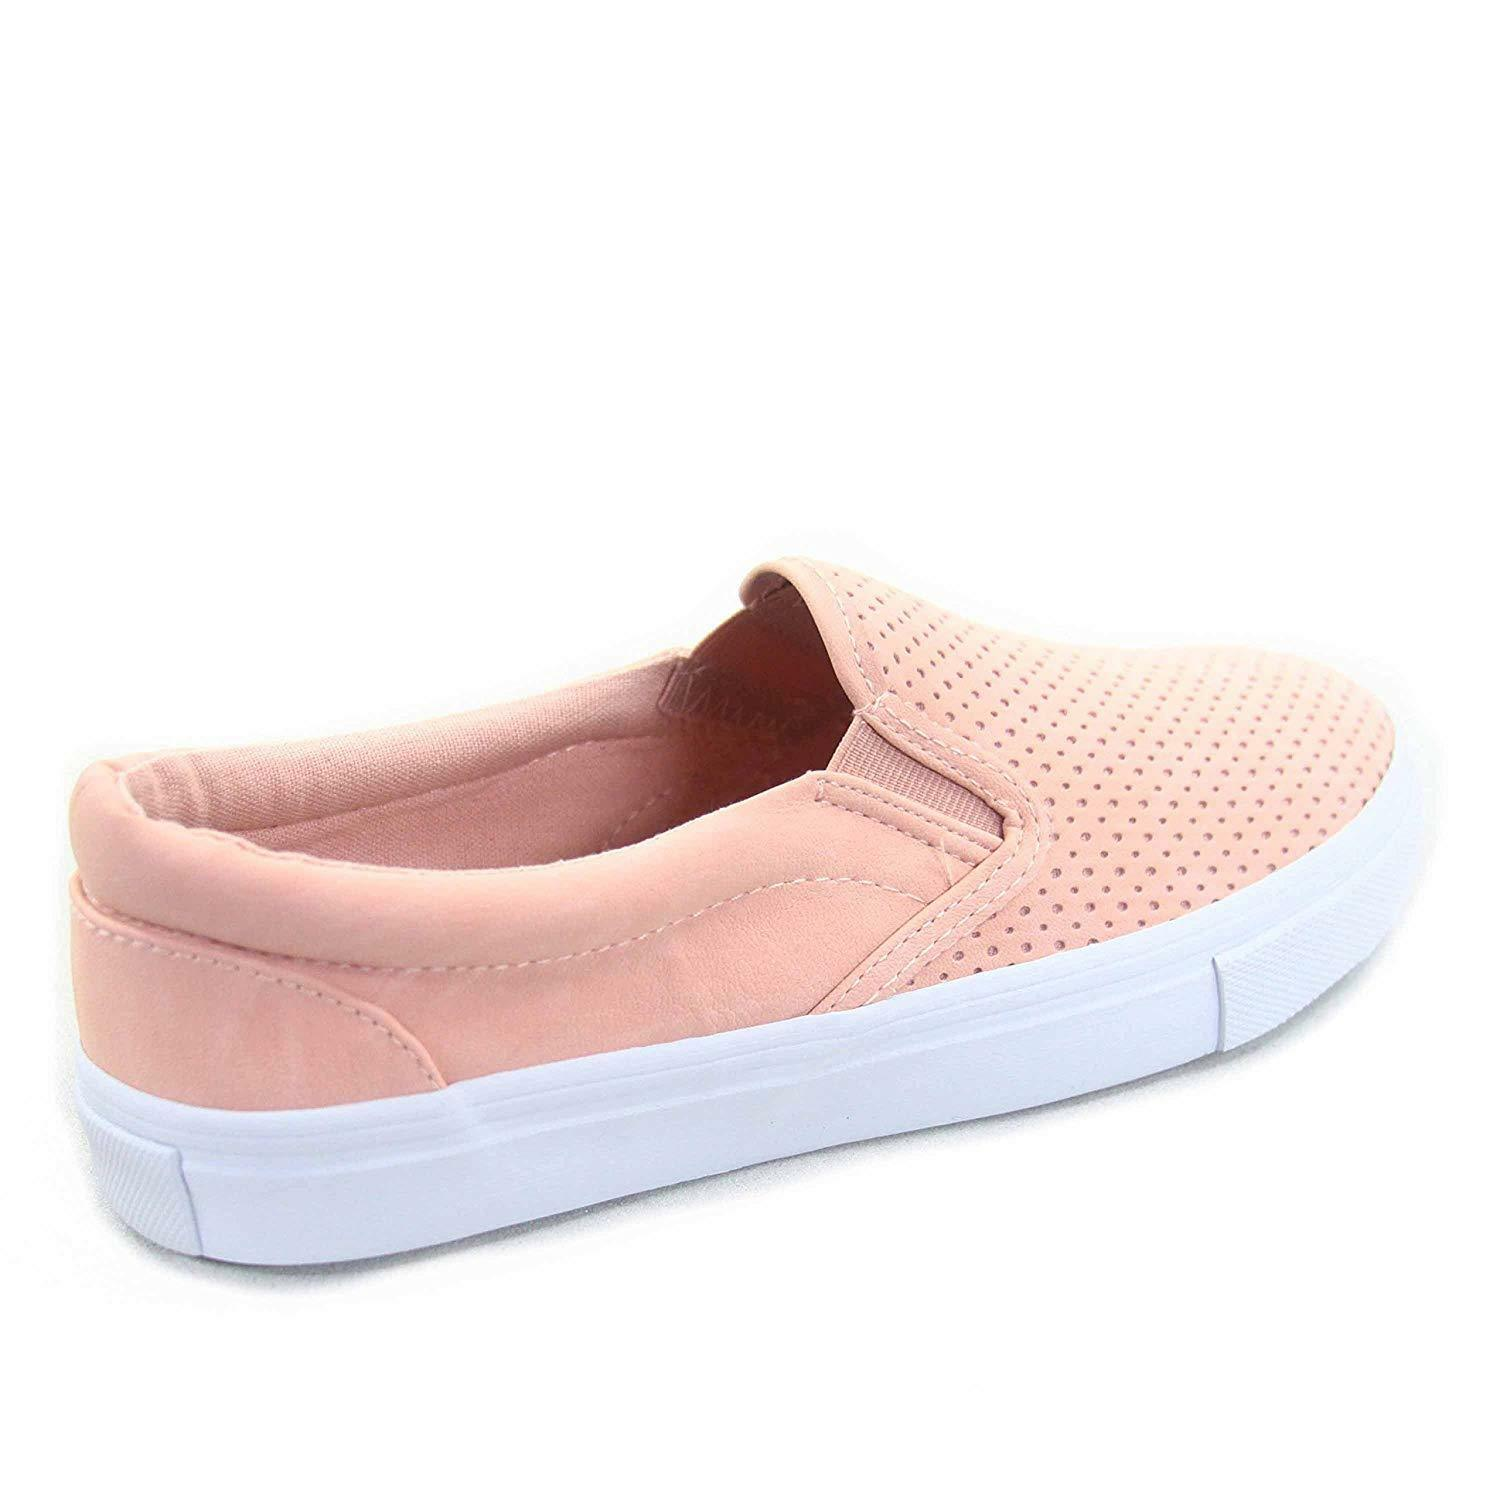 Soda Tracer-S Women's Cute Perforated Slip On Flat Round Toe Sneaker Shoes image 8